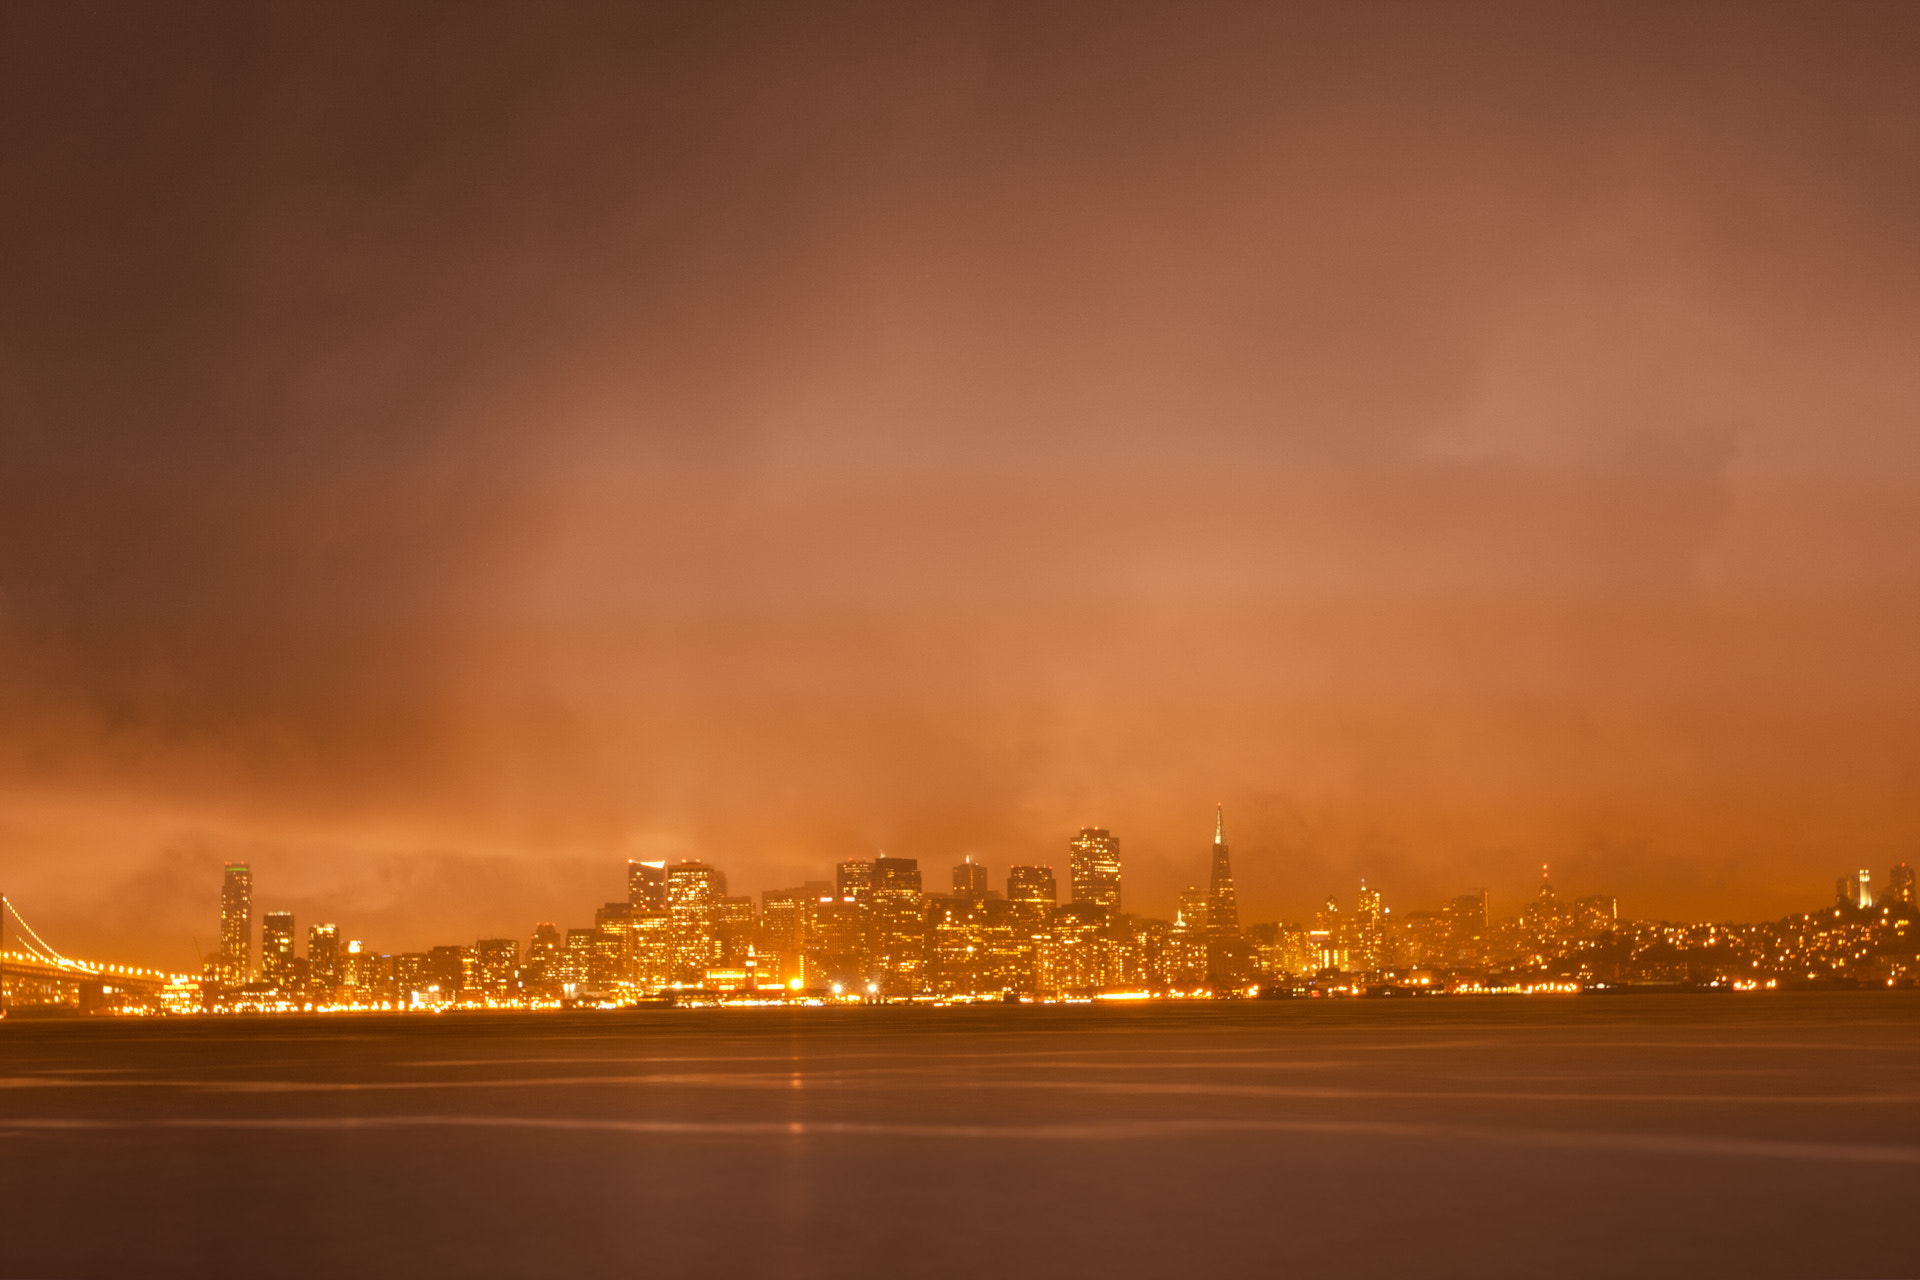 Photograph City of the Golden State by Ankit Modi on 500px